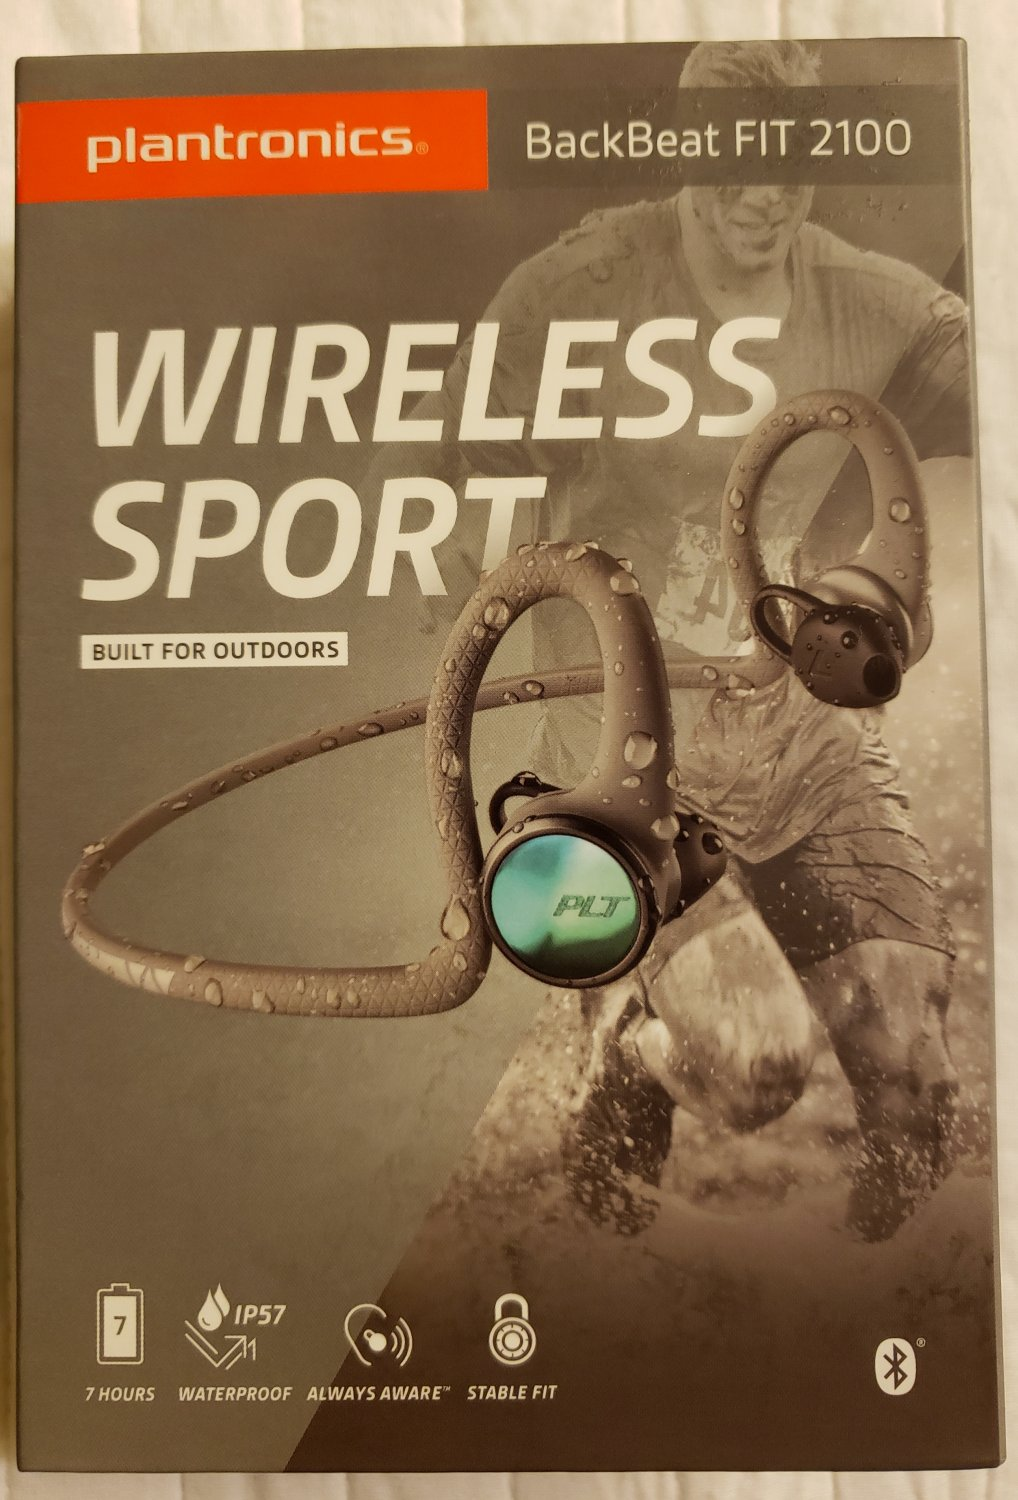 Plantronics FIT 2100 Bluetooth Wireless Earbuds